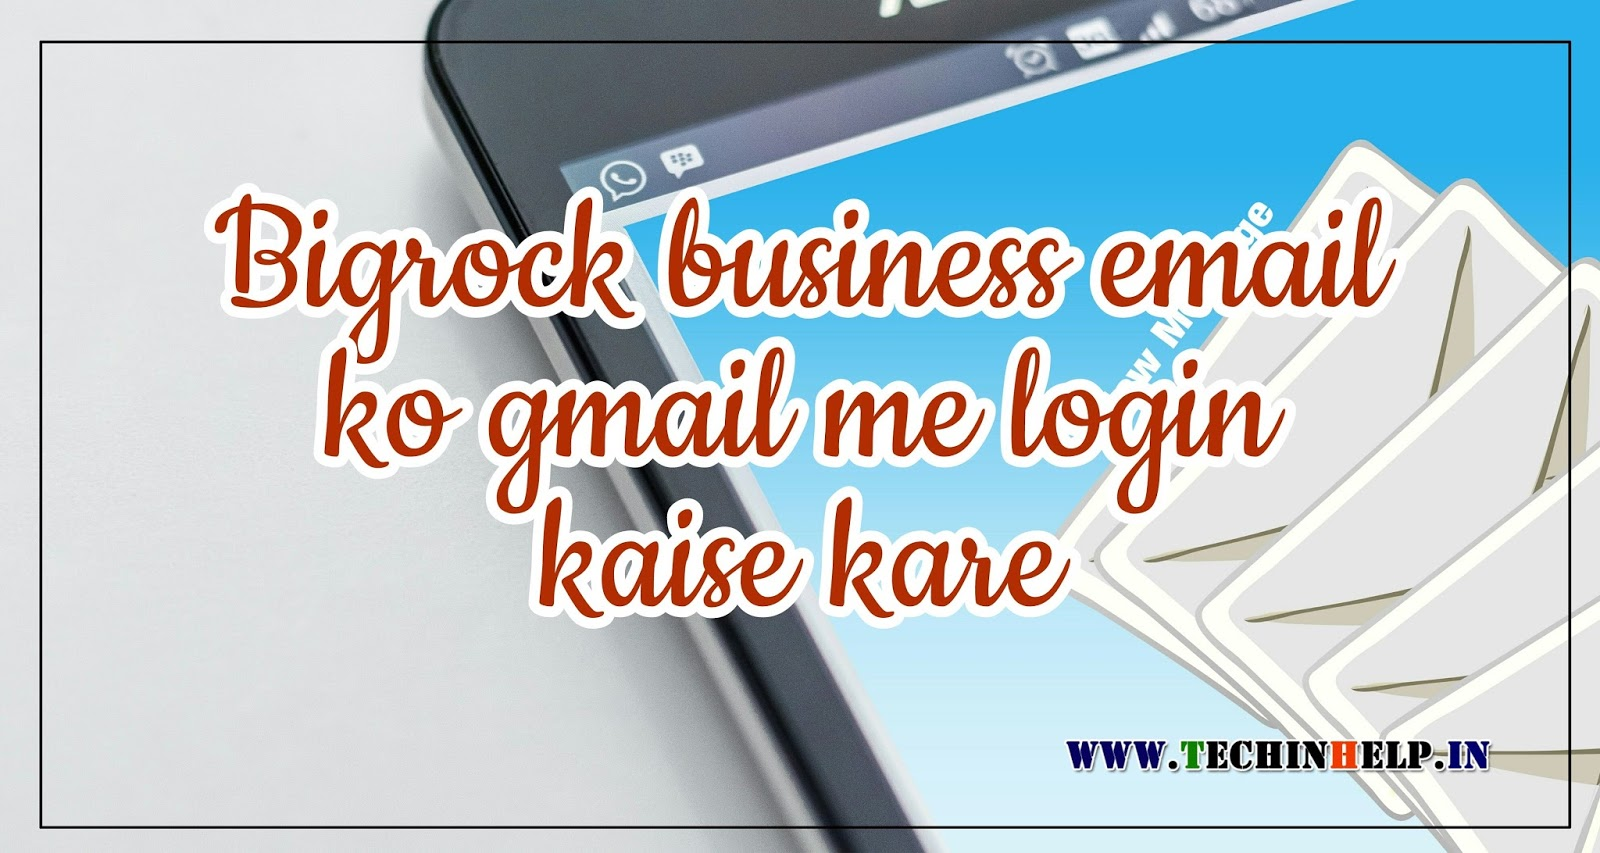 Bigrock Business Email Ko Gmail Or Email Me Login Kaise Kare